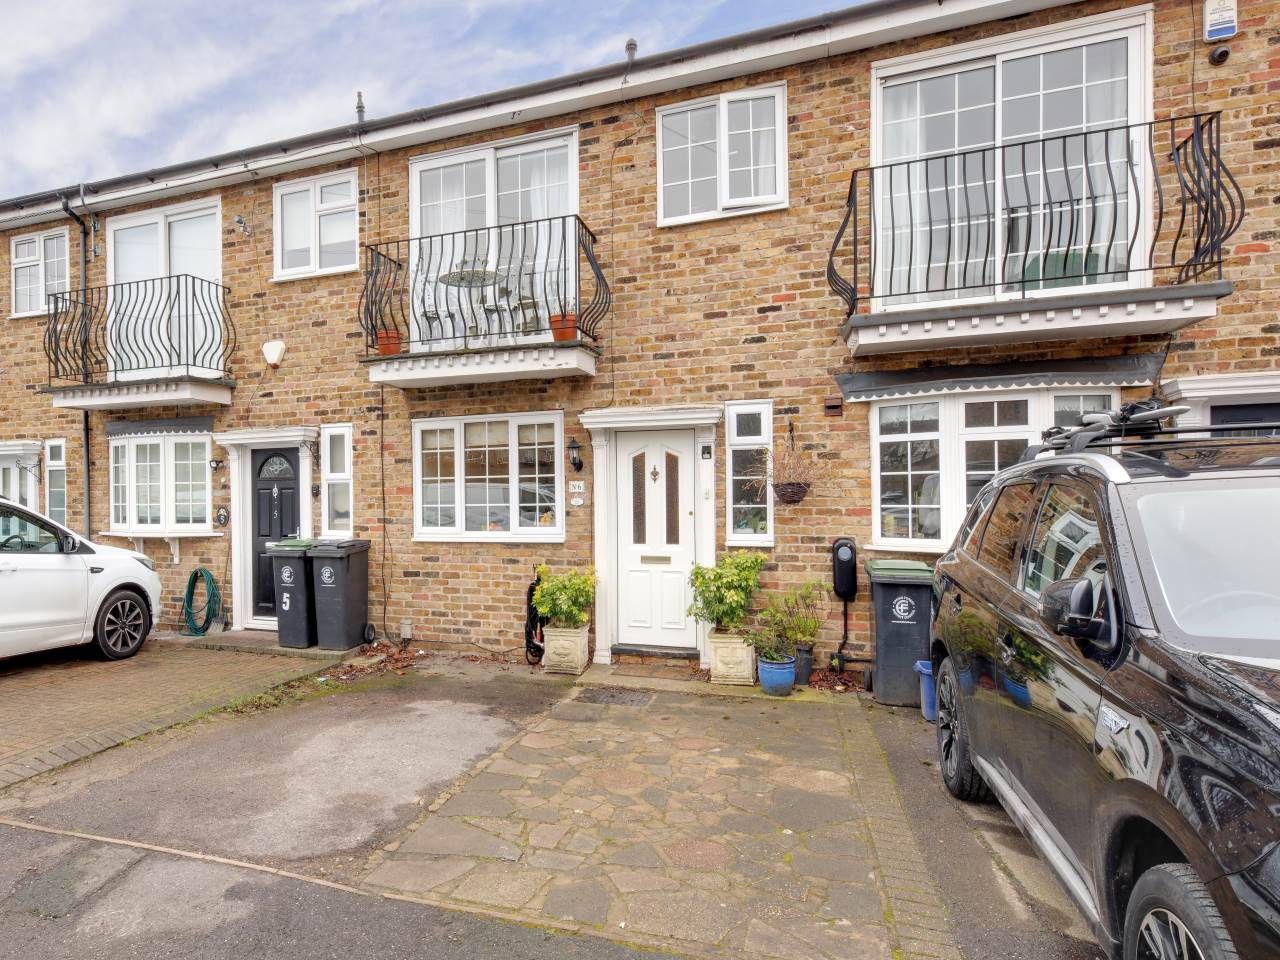 3 bed terraced house for sale in Faversham Close , Chigwell  - Property Image 1